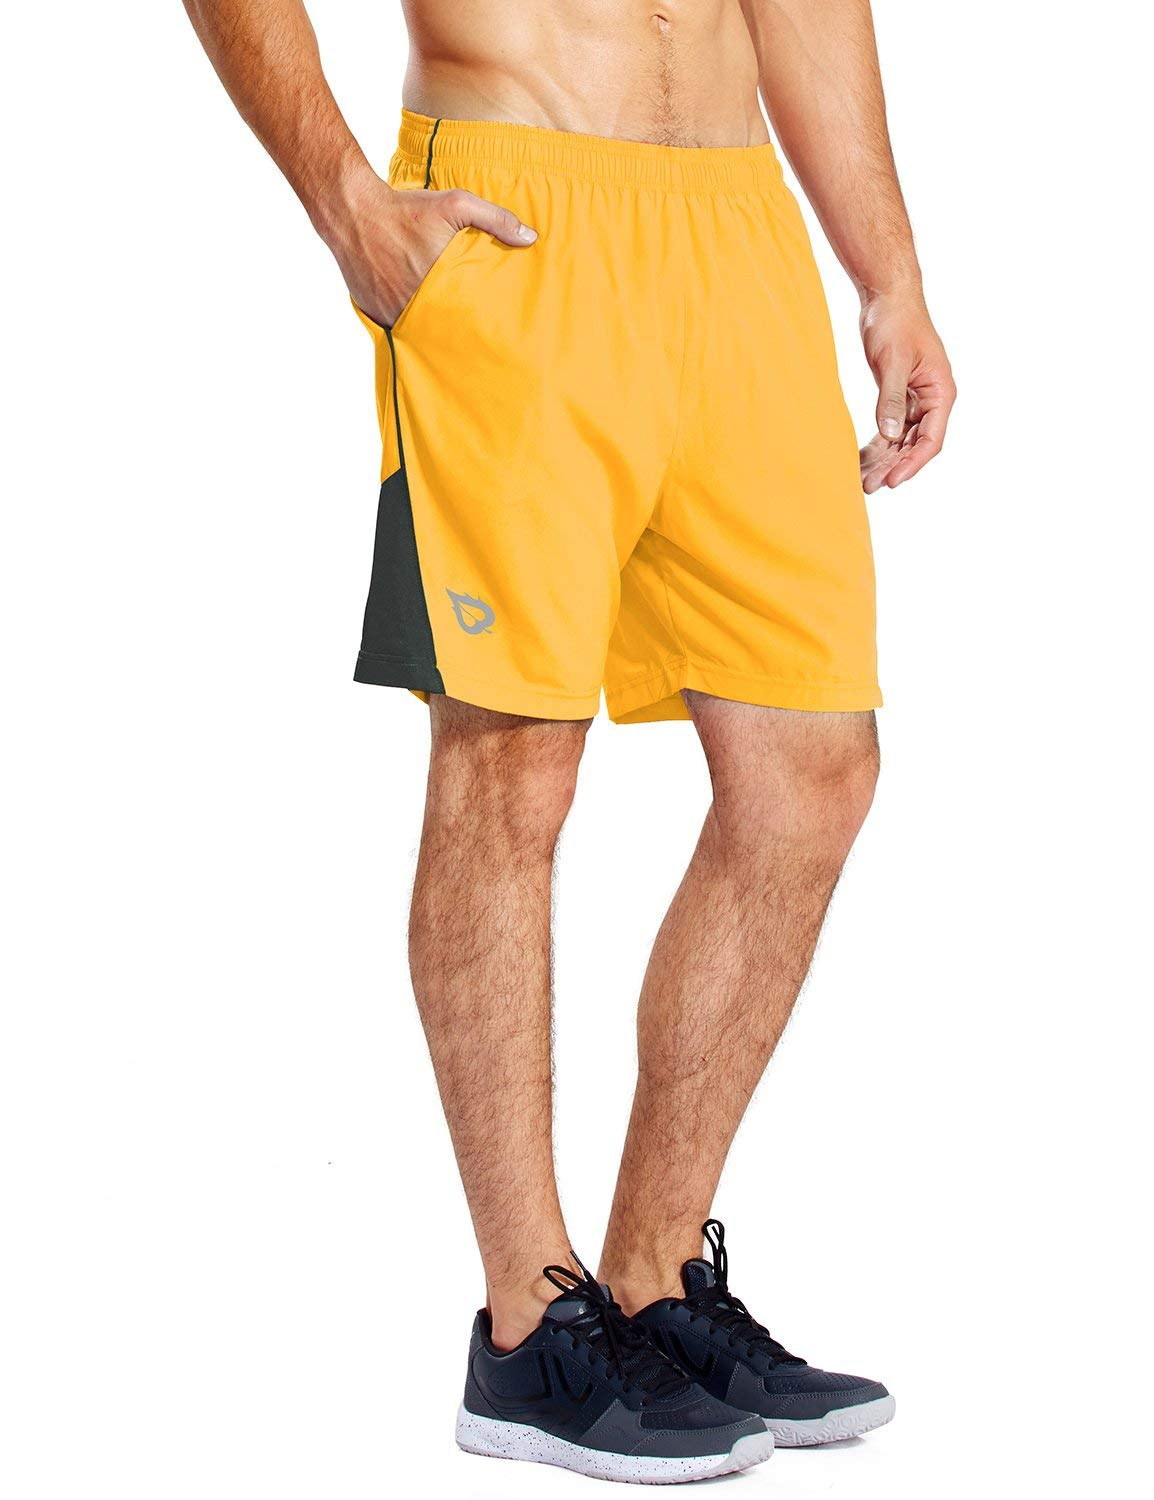 BALEAF Men's 7 Inches Athletic Running Shorts Quick Dry Mesh Liner Zip Pocket Yellow Size XXL by BALEAF